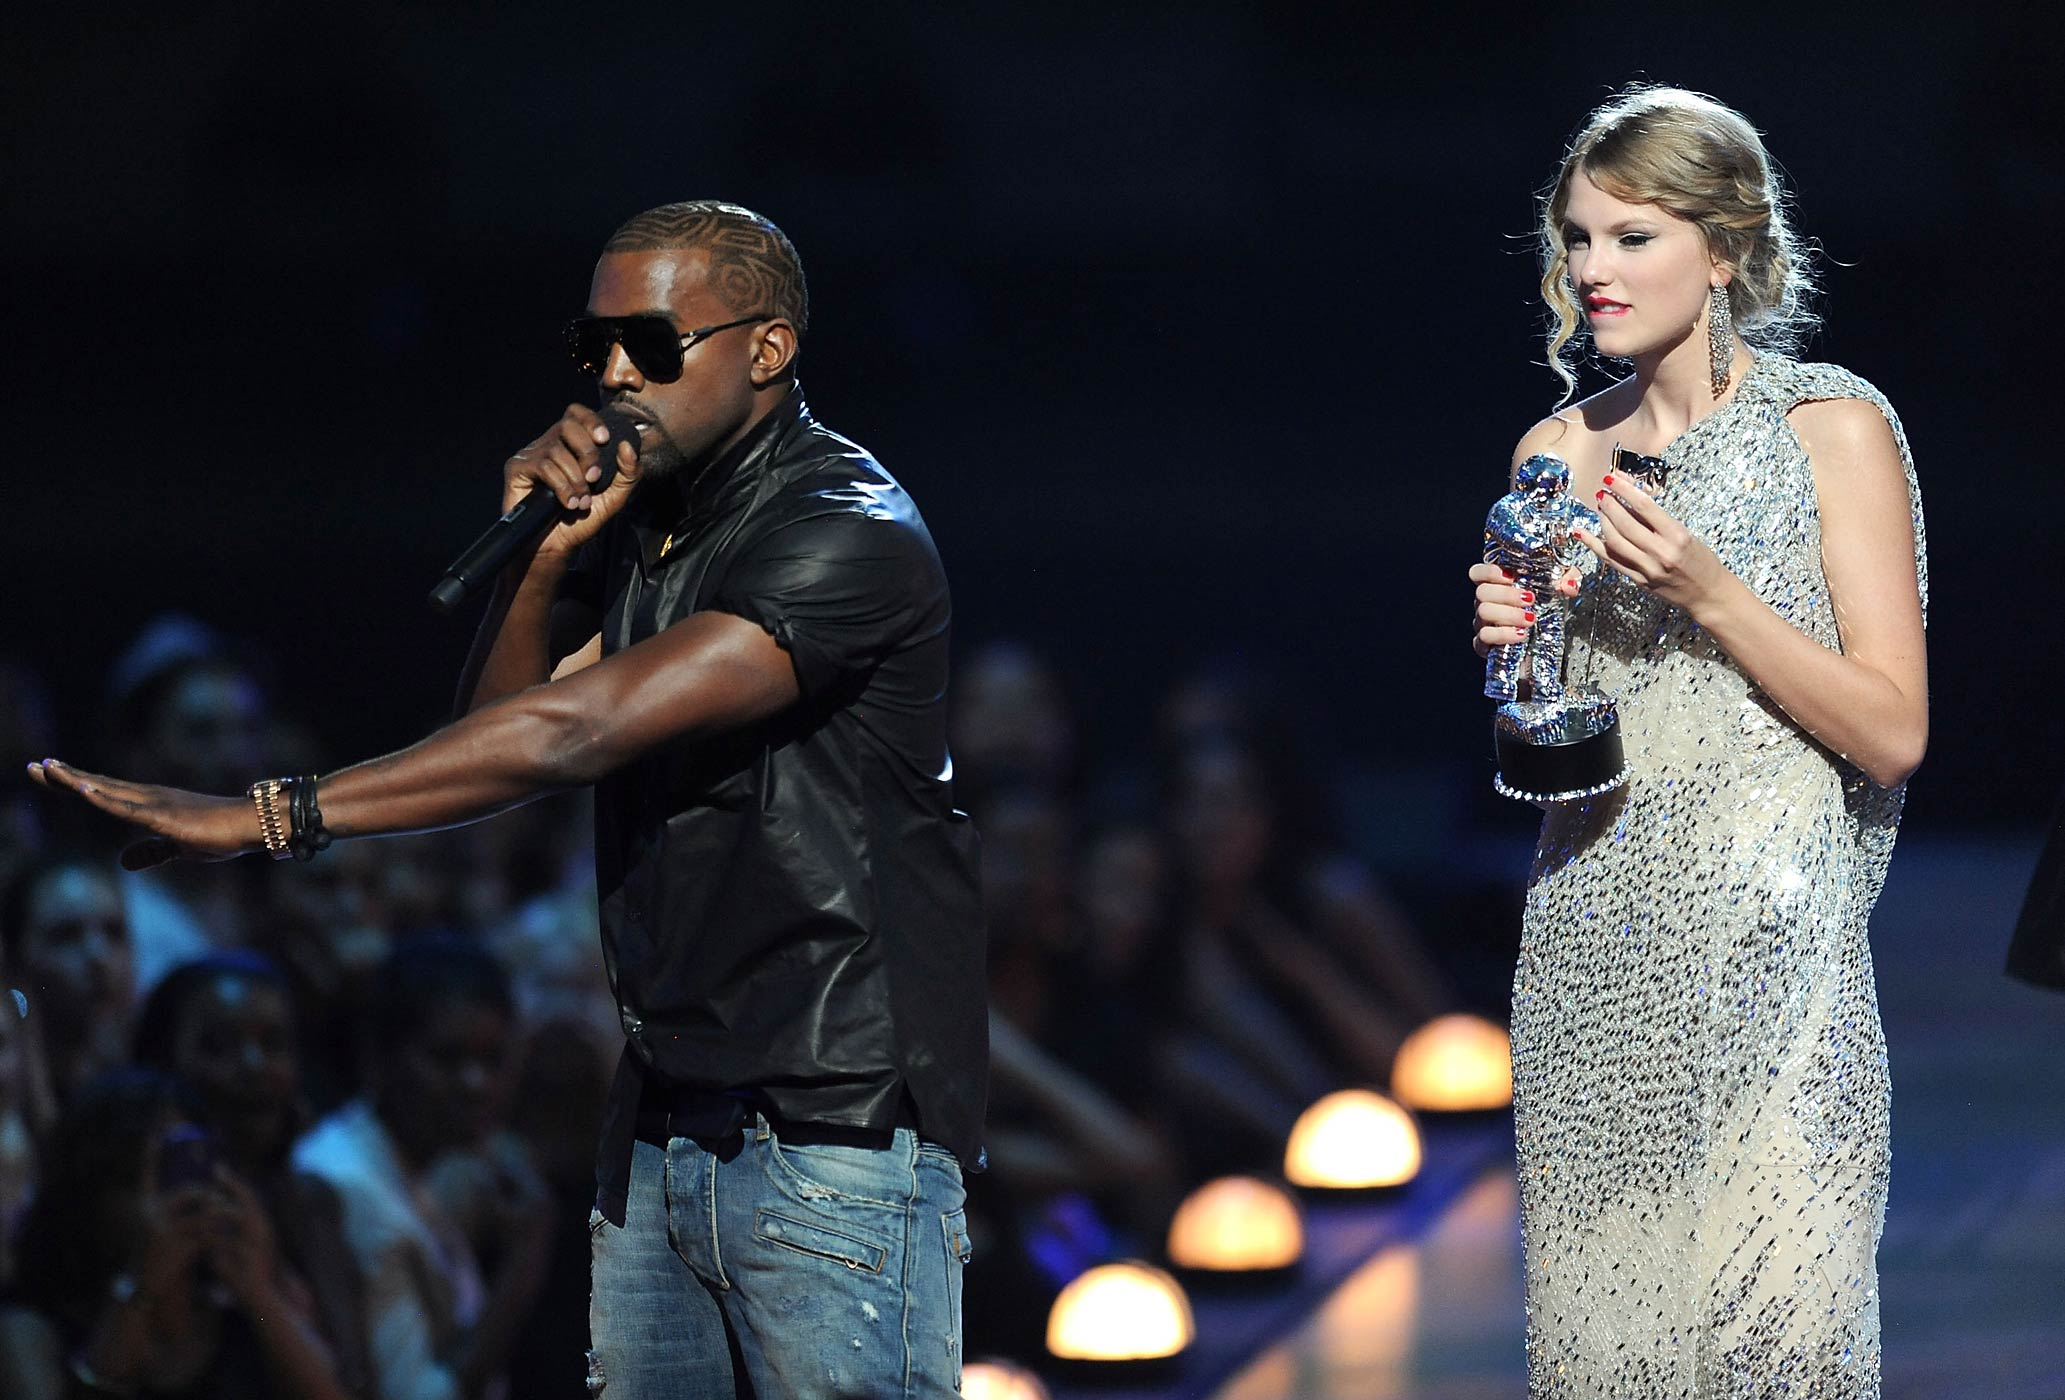 Kanye West takes the microphone from Taylor Swift and speaks onstage during the 2009 MTV Video Music Awards on Sept. 13, 2009